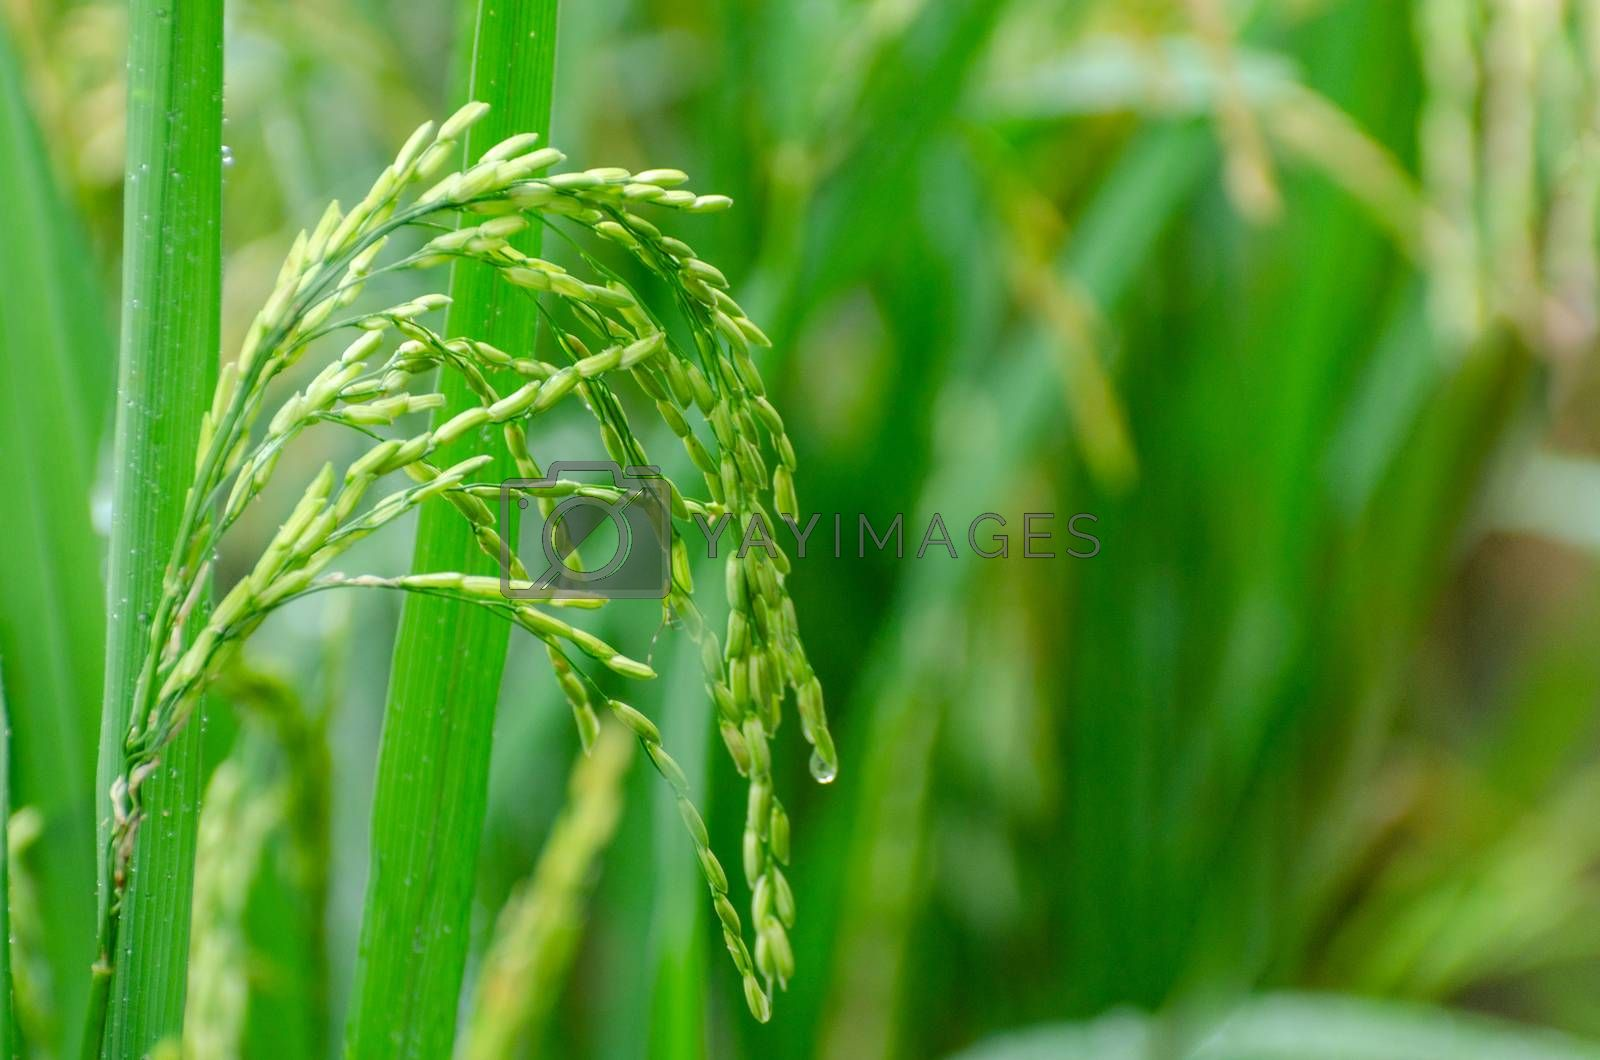 Nearly ripe green rice is in the lush green pasture Close-up by Sarayut